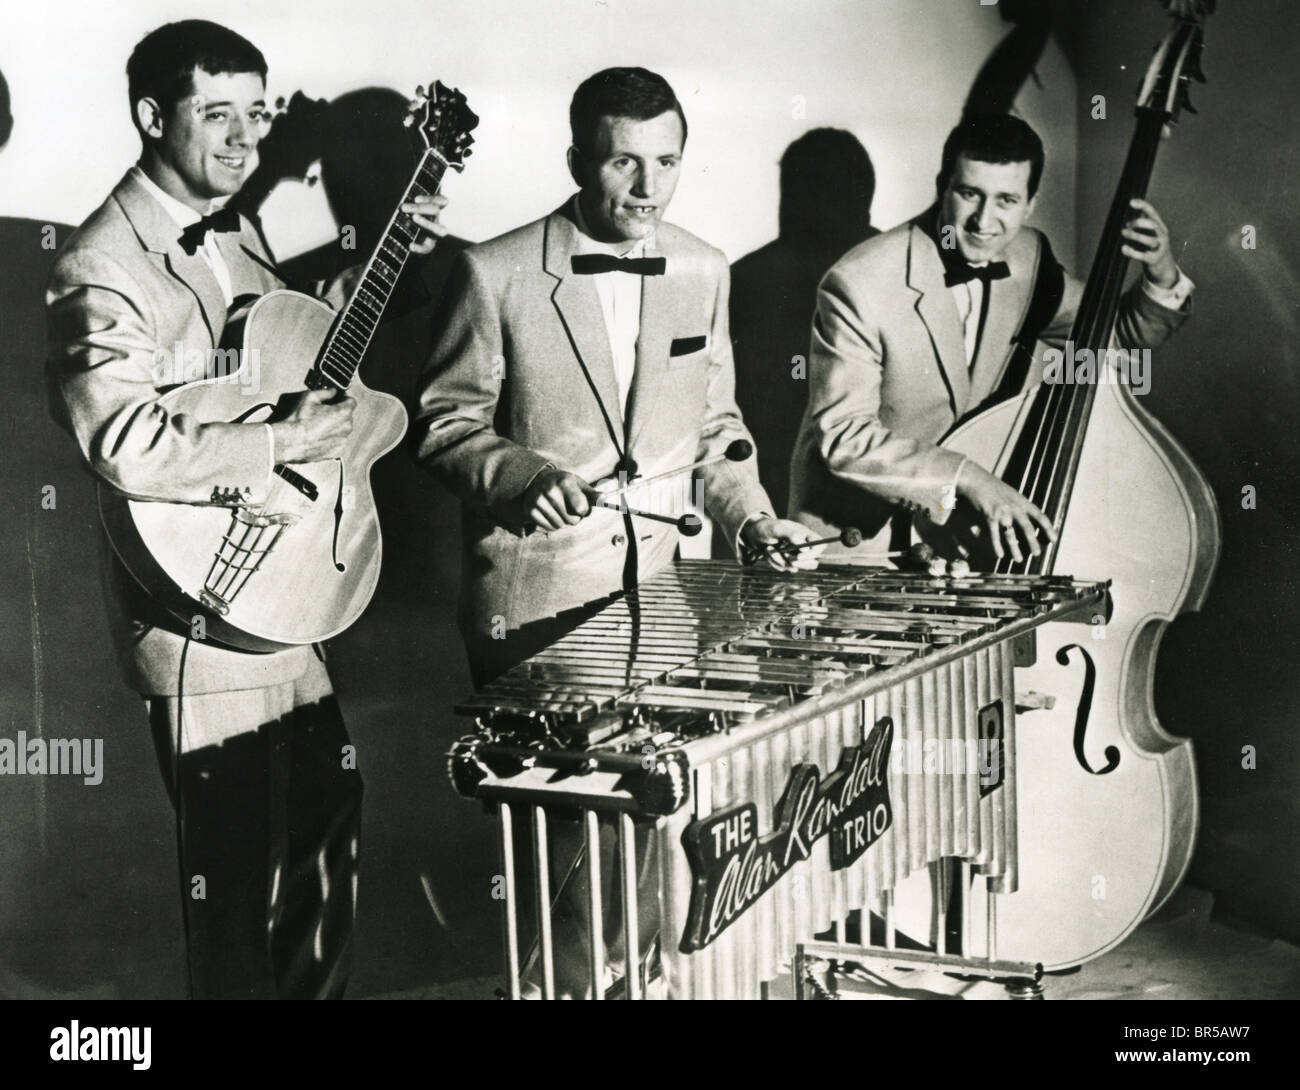 ALAN RANDALL TRIO about 1955 with Randall on vibraphone - Stock Image